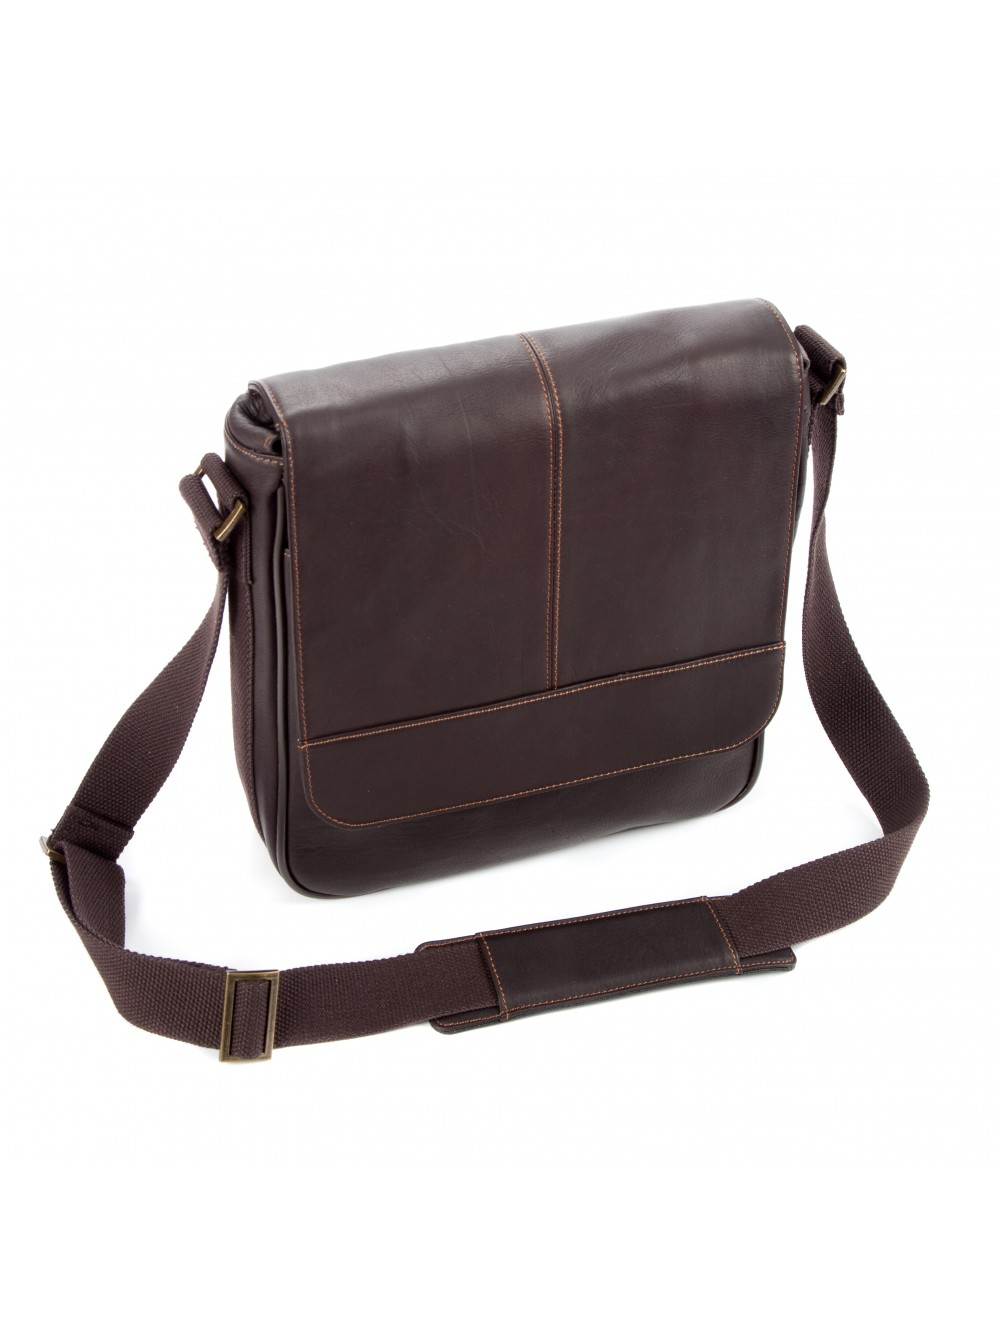 """Falcon Colombian Leather 10.1"""" iPad/Tablet Bag - FI6702 Brown"""